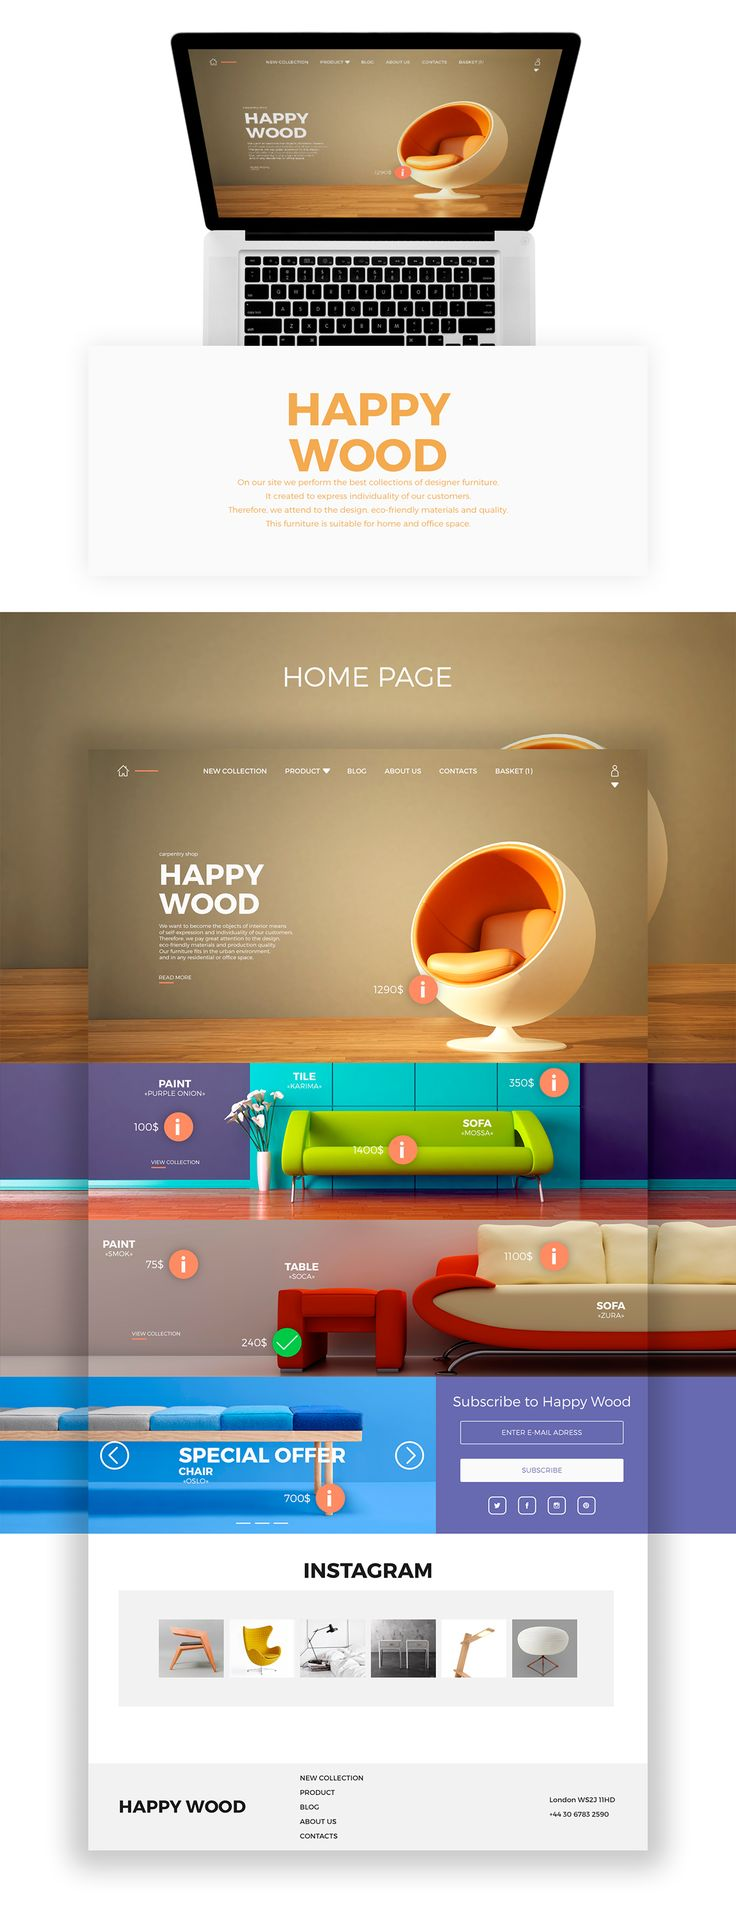 Online store interior goods «HAPPY WOOD» on Web Design Served